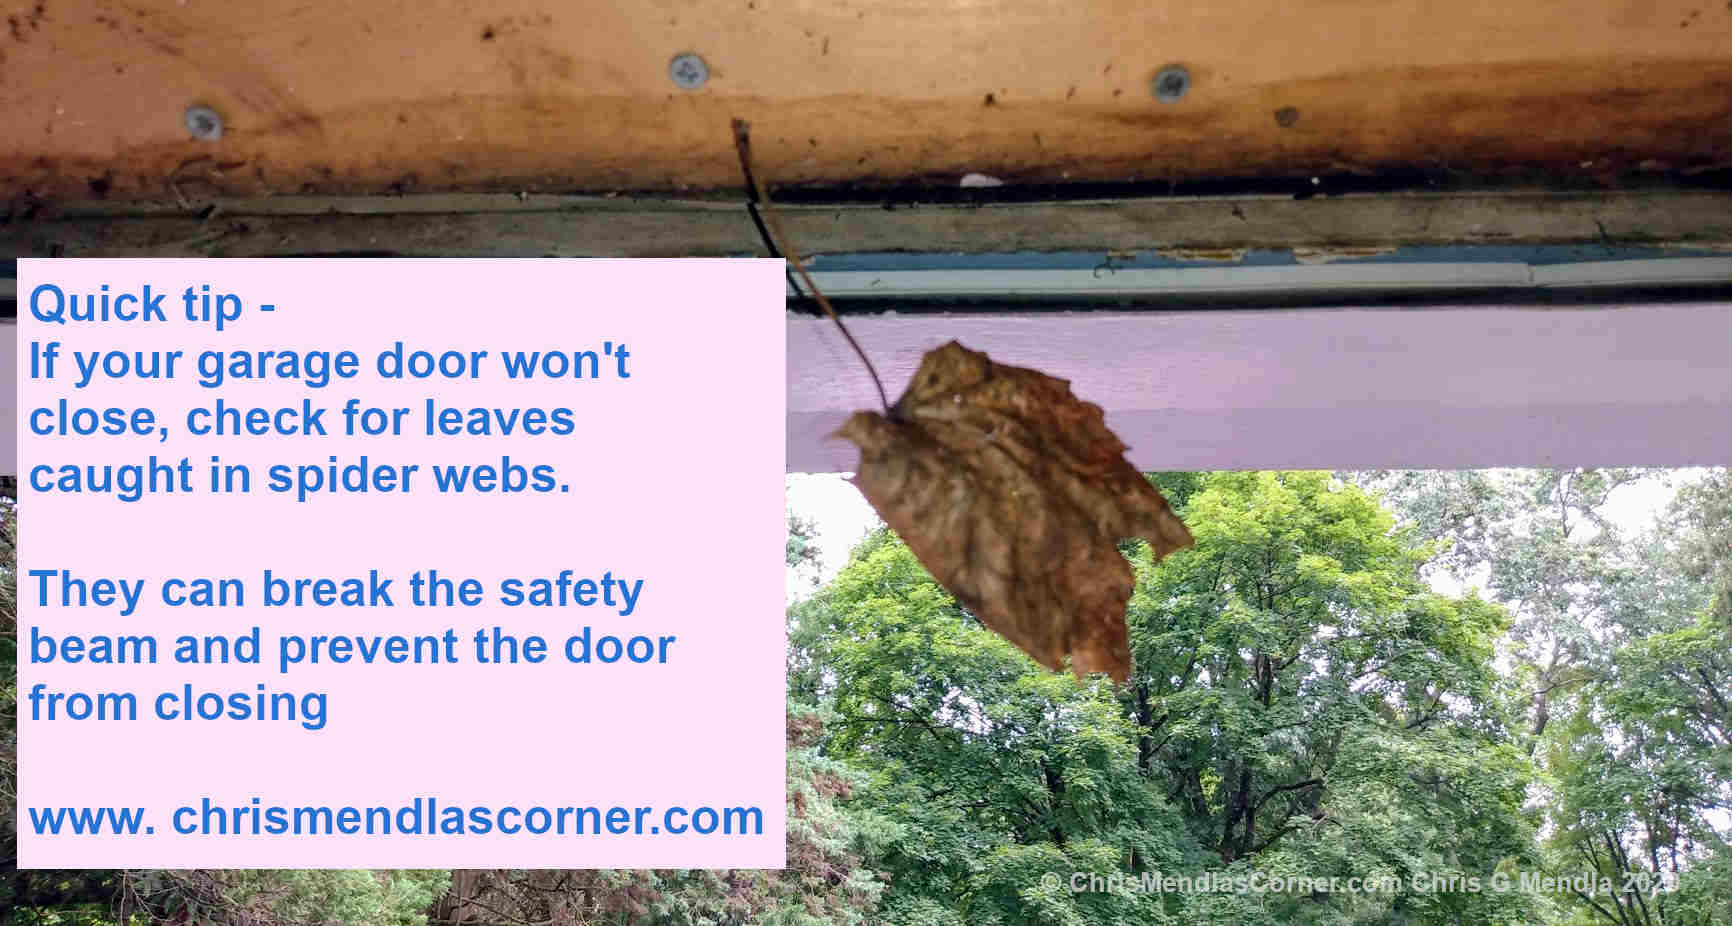 A possible quick fix if your garage door fails to close